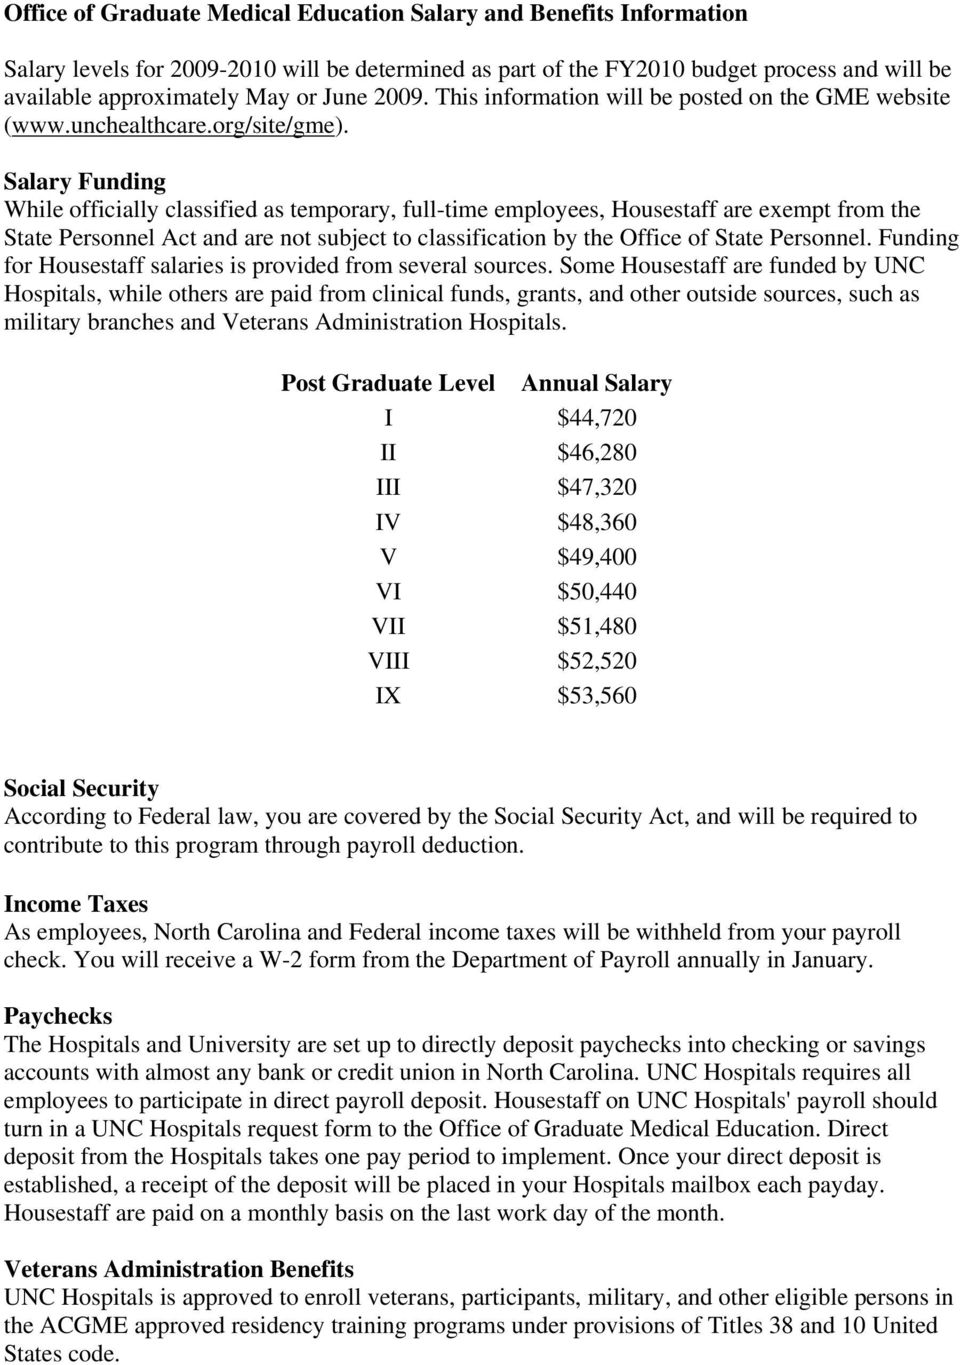 Office of Graduate Medical Education Salary and Benefits